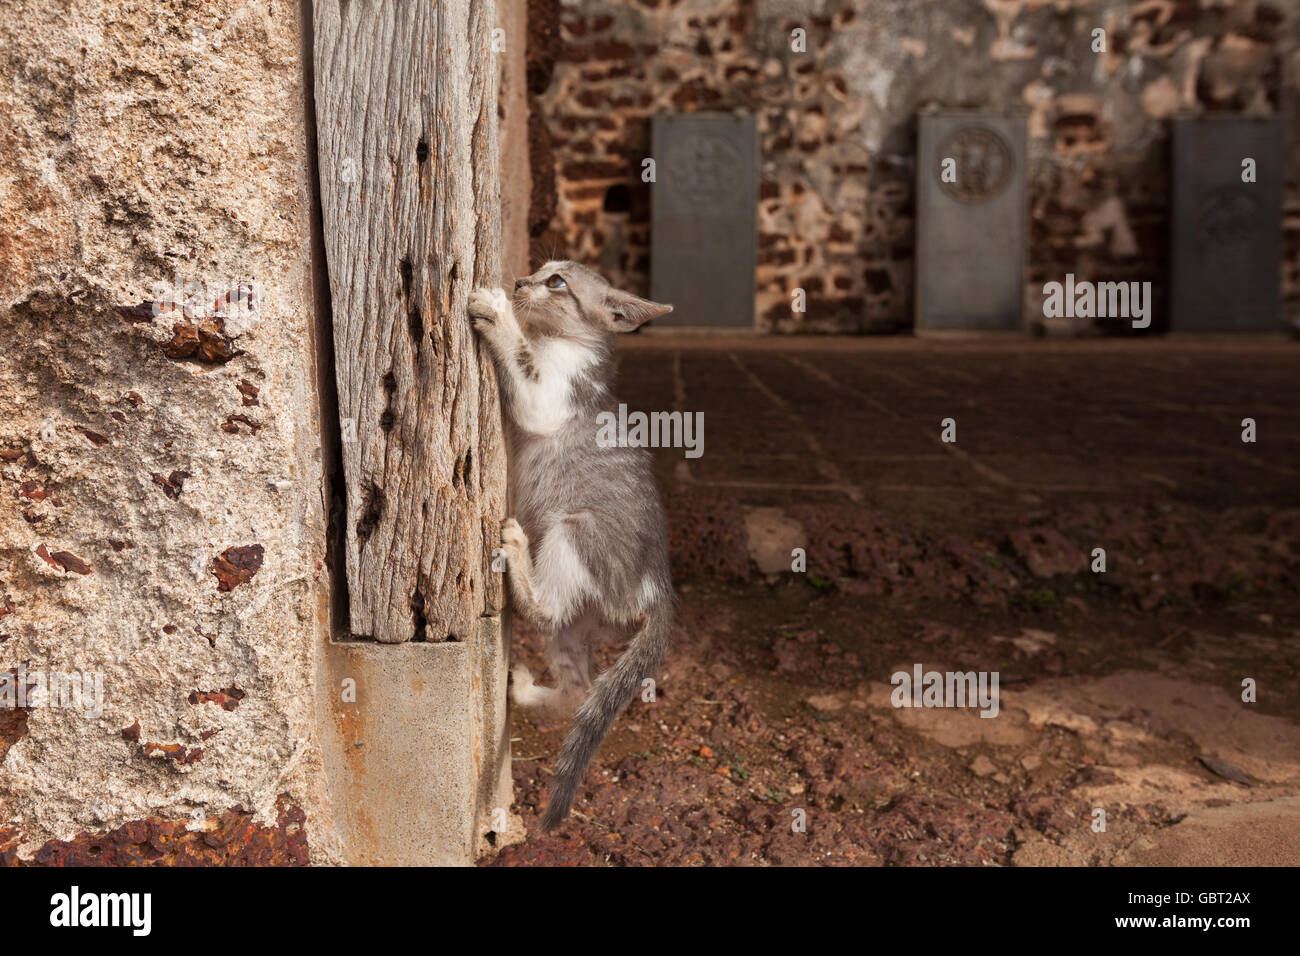 A kitten learning to climb onto an old wooden pillar. - Stock Image